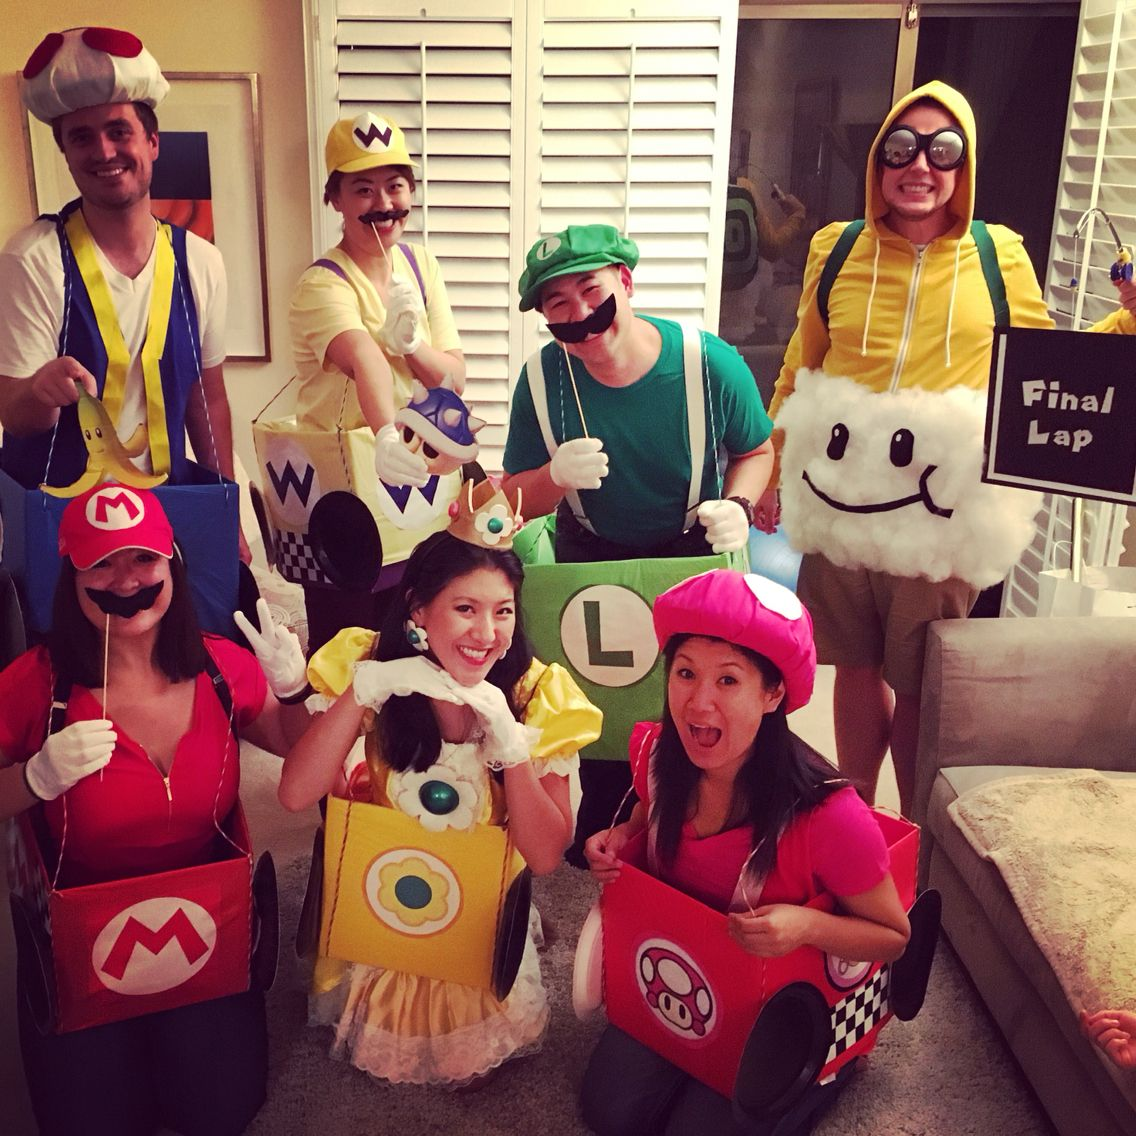 sc 1 th 224 & Coolest Homemade Mario Kart Costume t